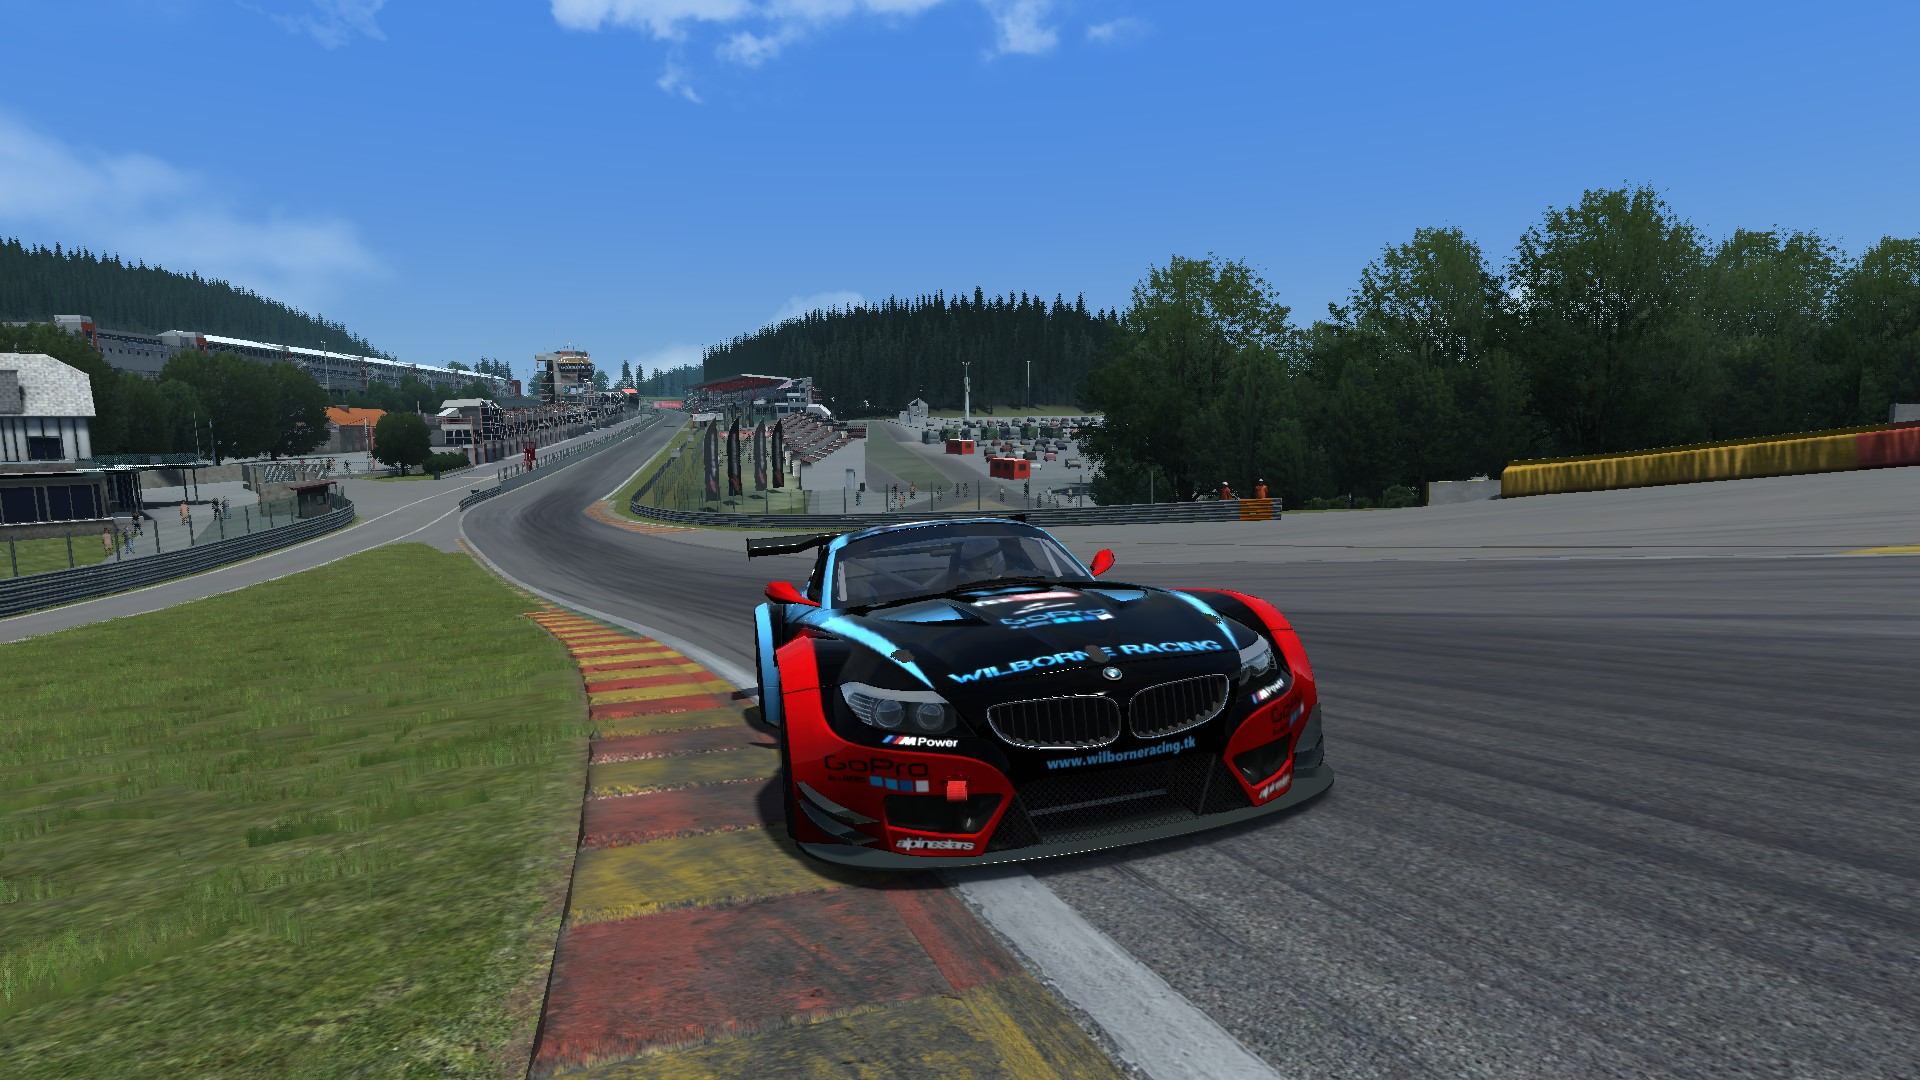 Screenshot_sareni_camaro_gt_racecar_spa_2-2-2015-17-3-2.jpg